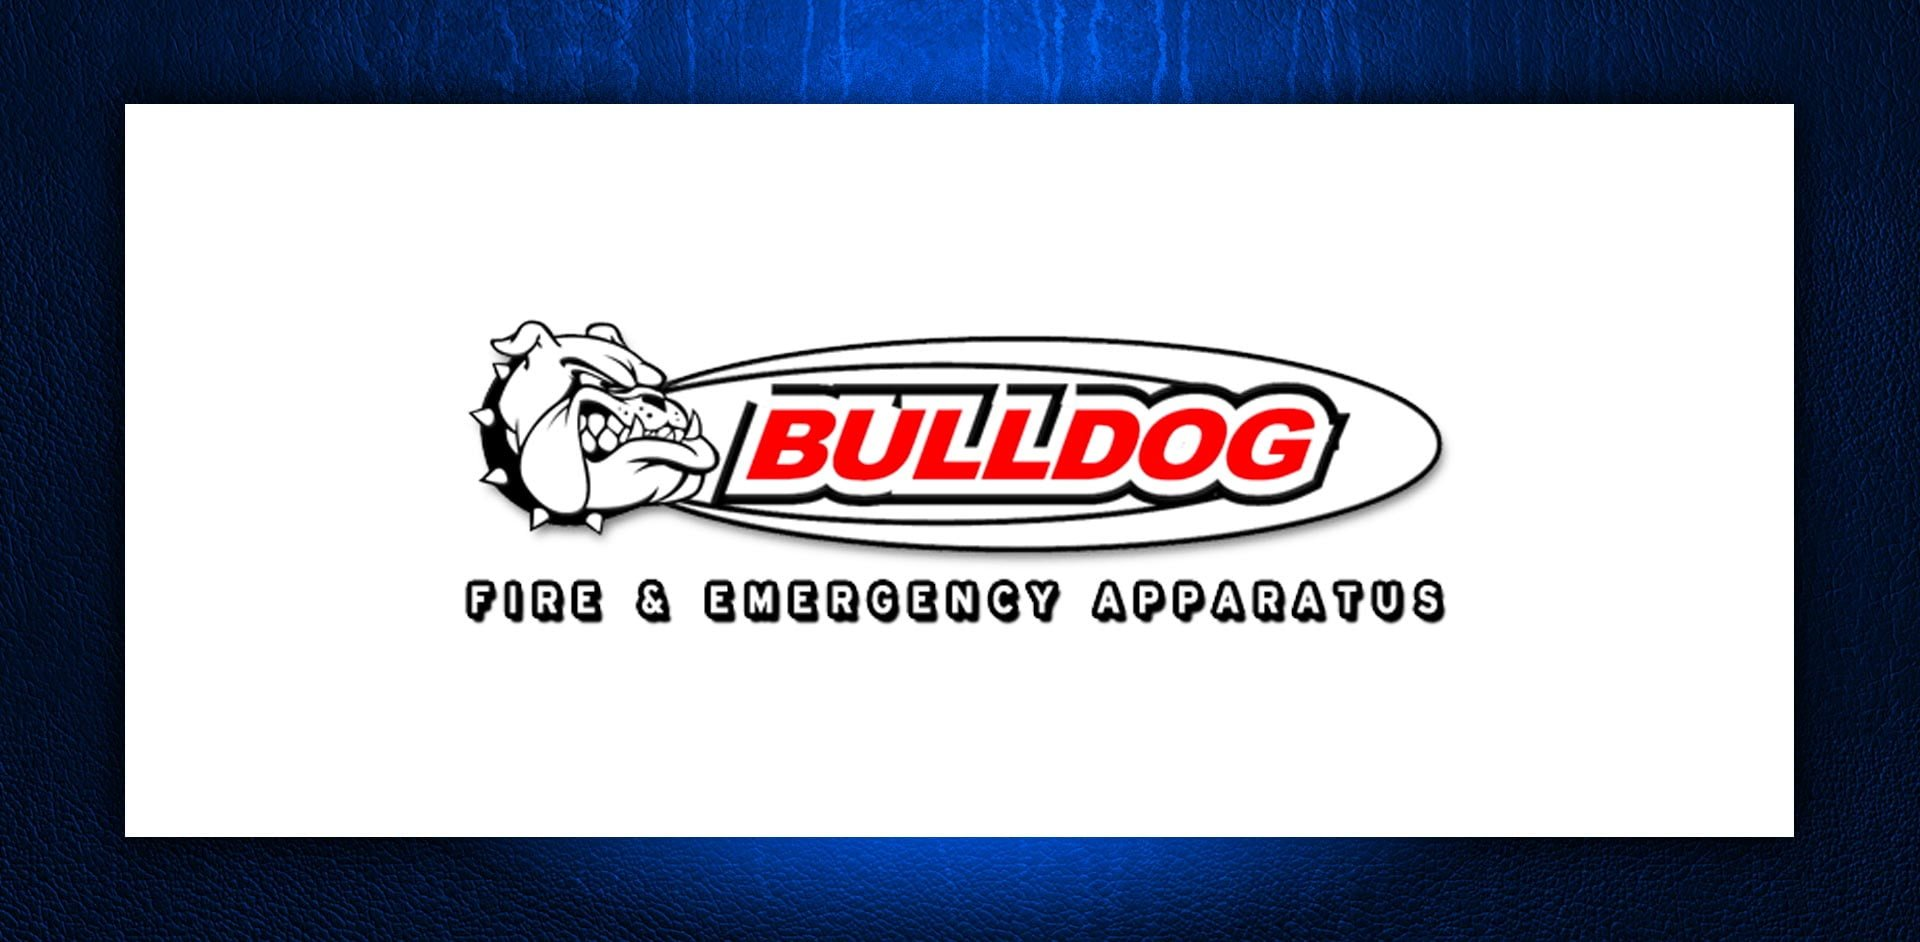 Bulldog Fire & Emergency Apparatus